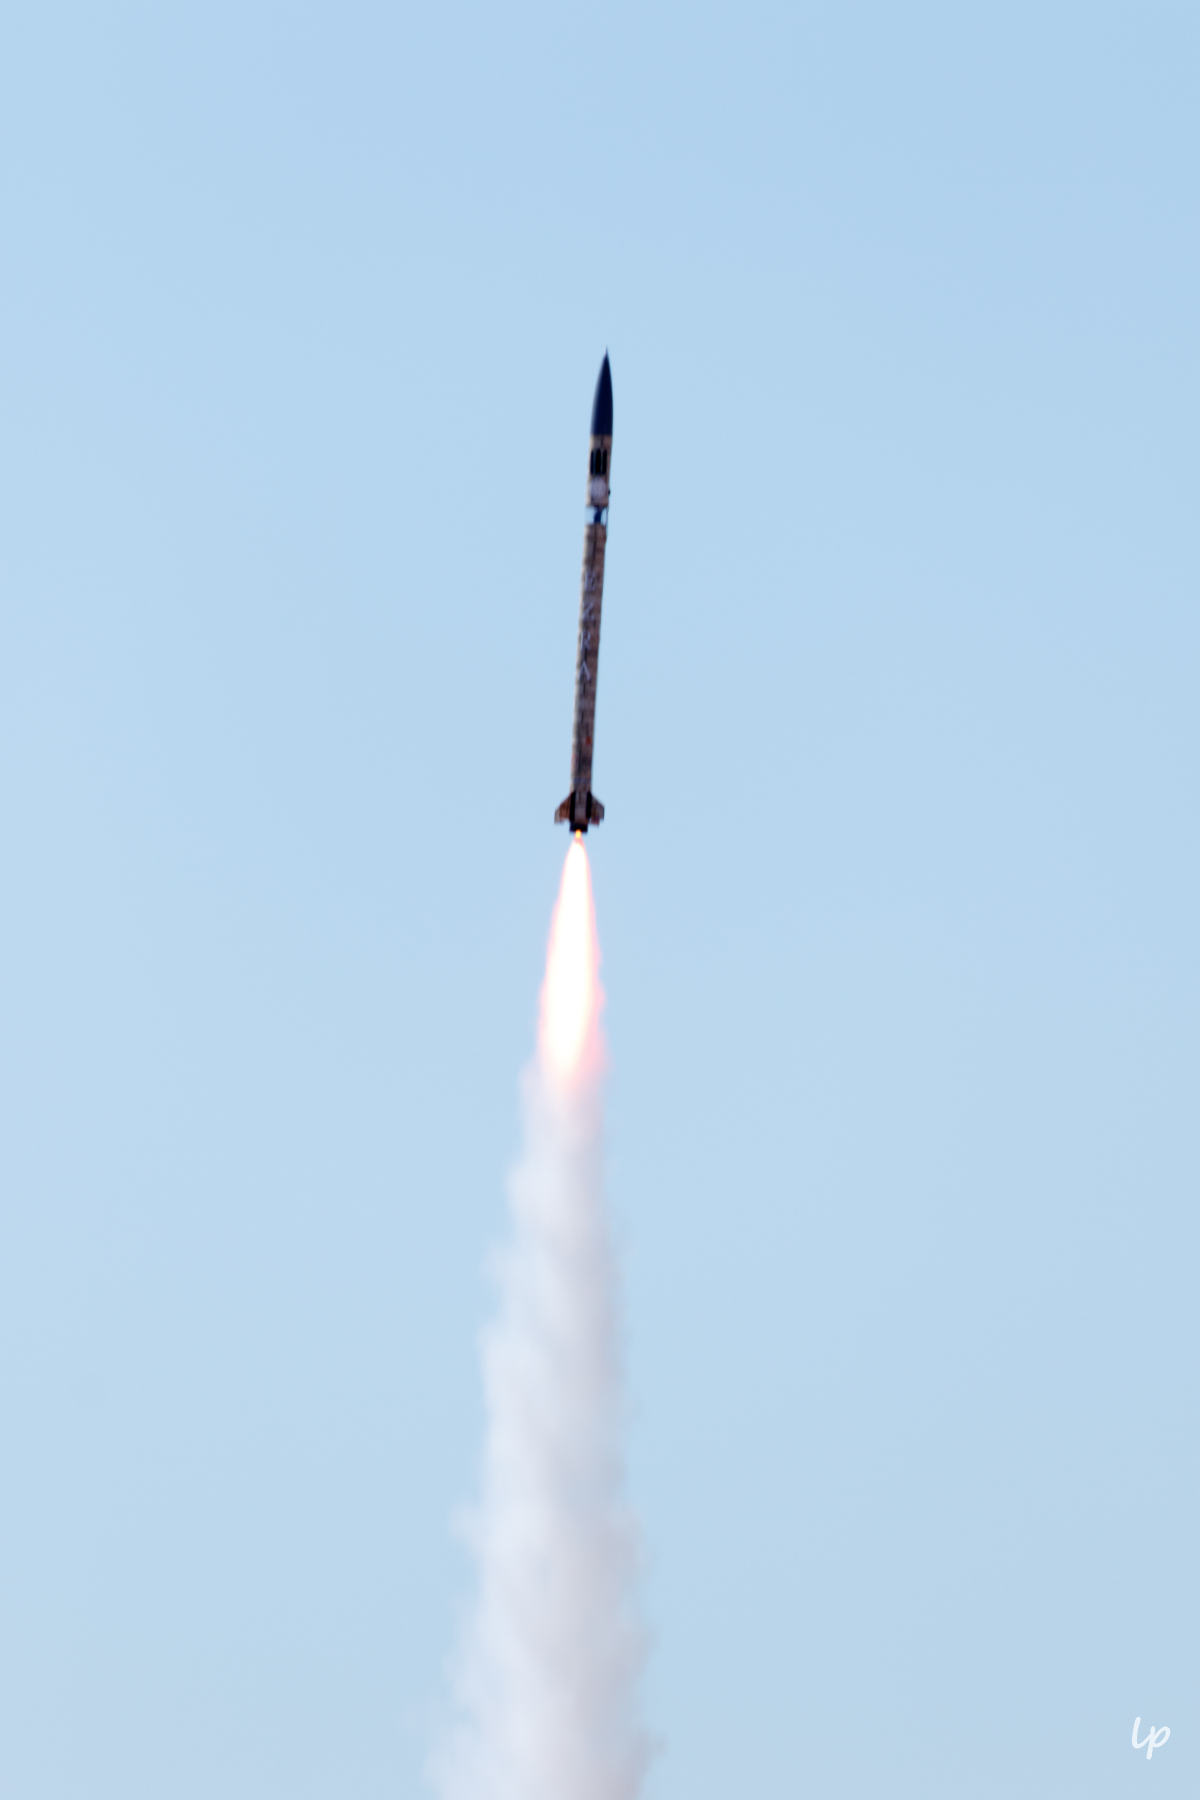 Photo of Cornell Rocketry Team's rocket, Ezra, in flight.